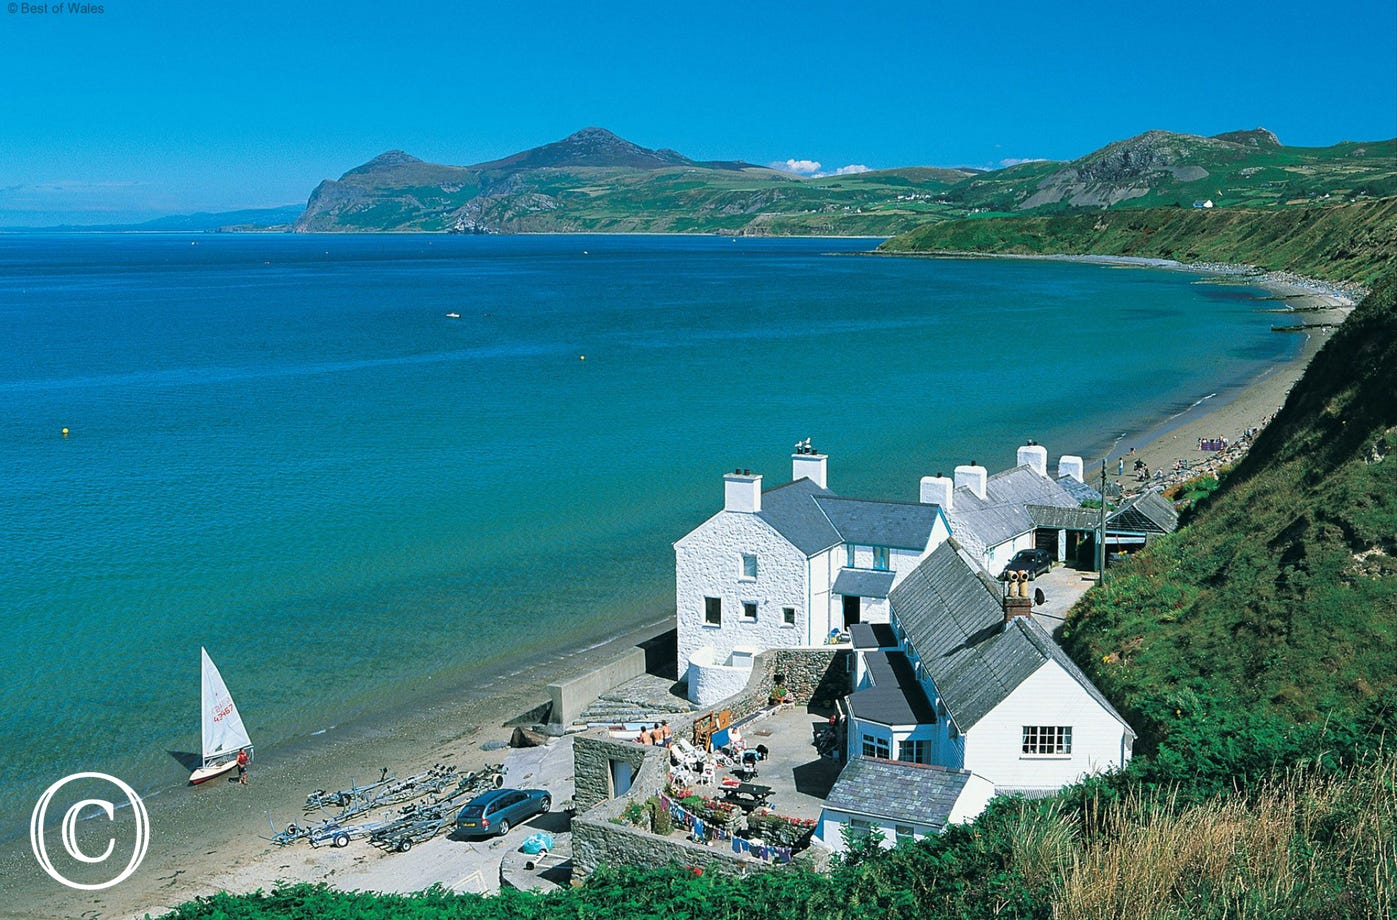 Ty Coch Inn at Porthdinllaen - voted the 3rd best beach pub in the world